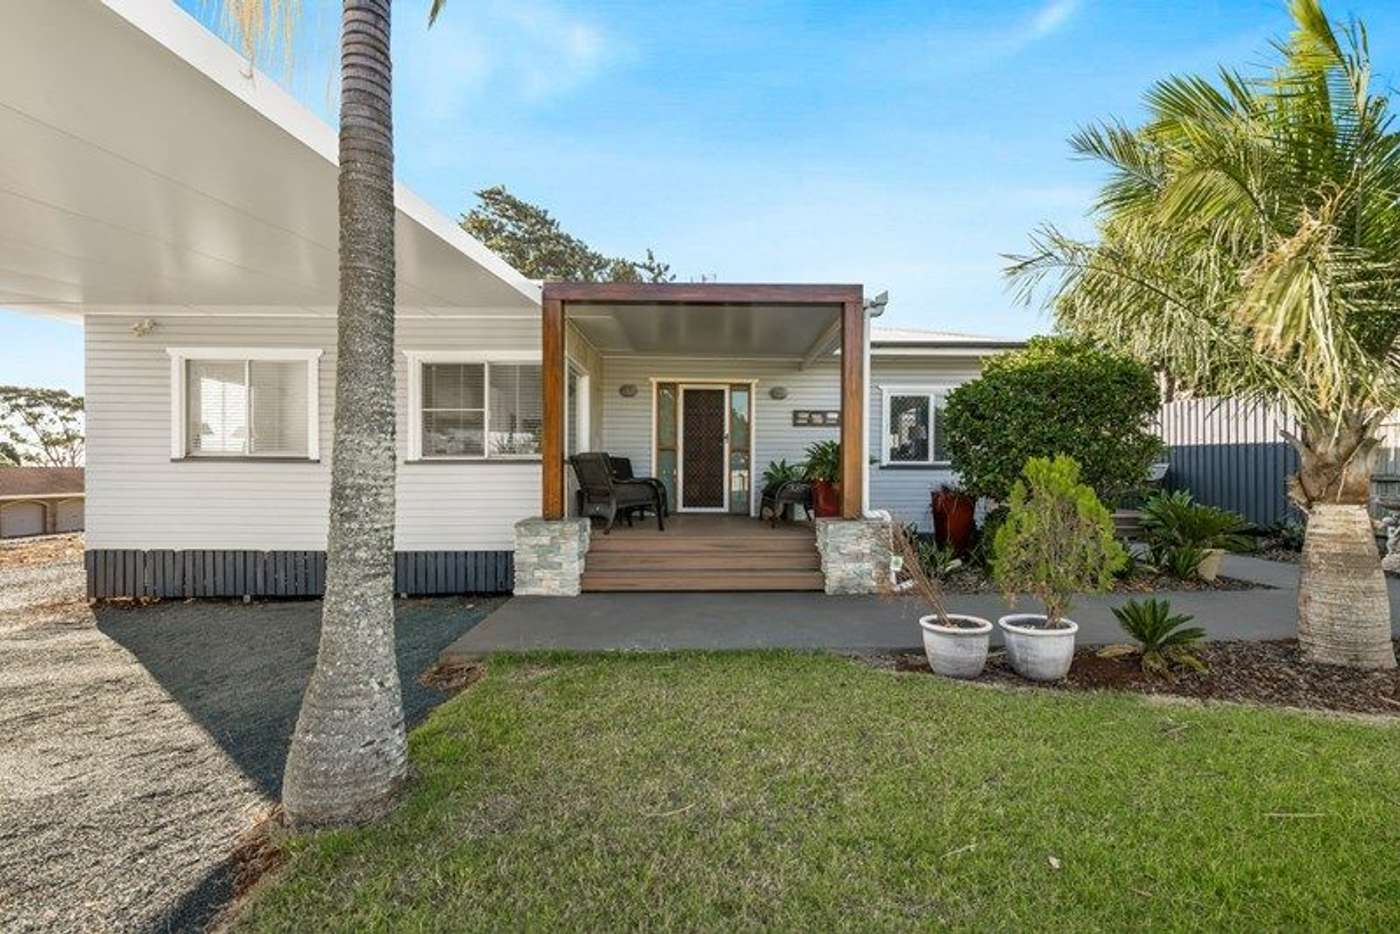 Main view of Homely house listing, 23 Gipps Street, Drayton QLD 4350